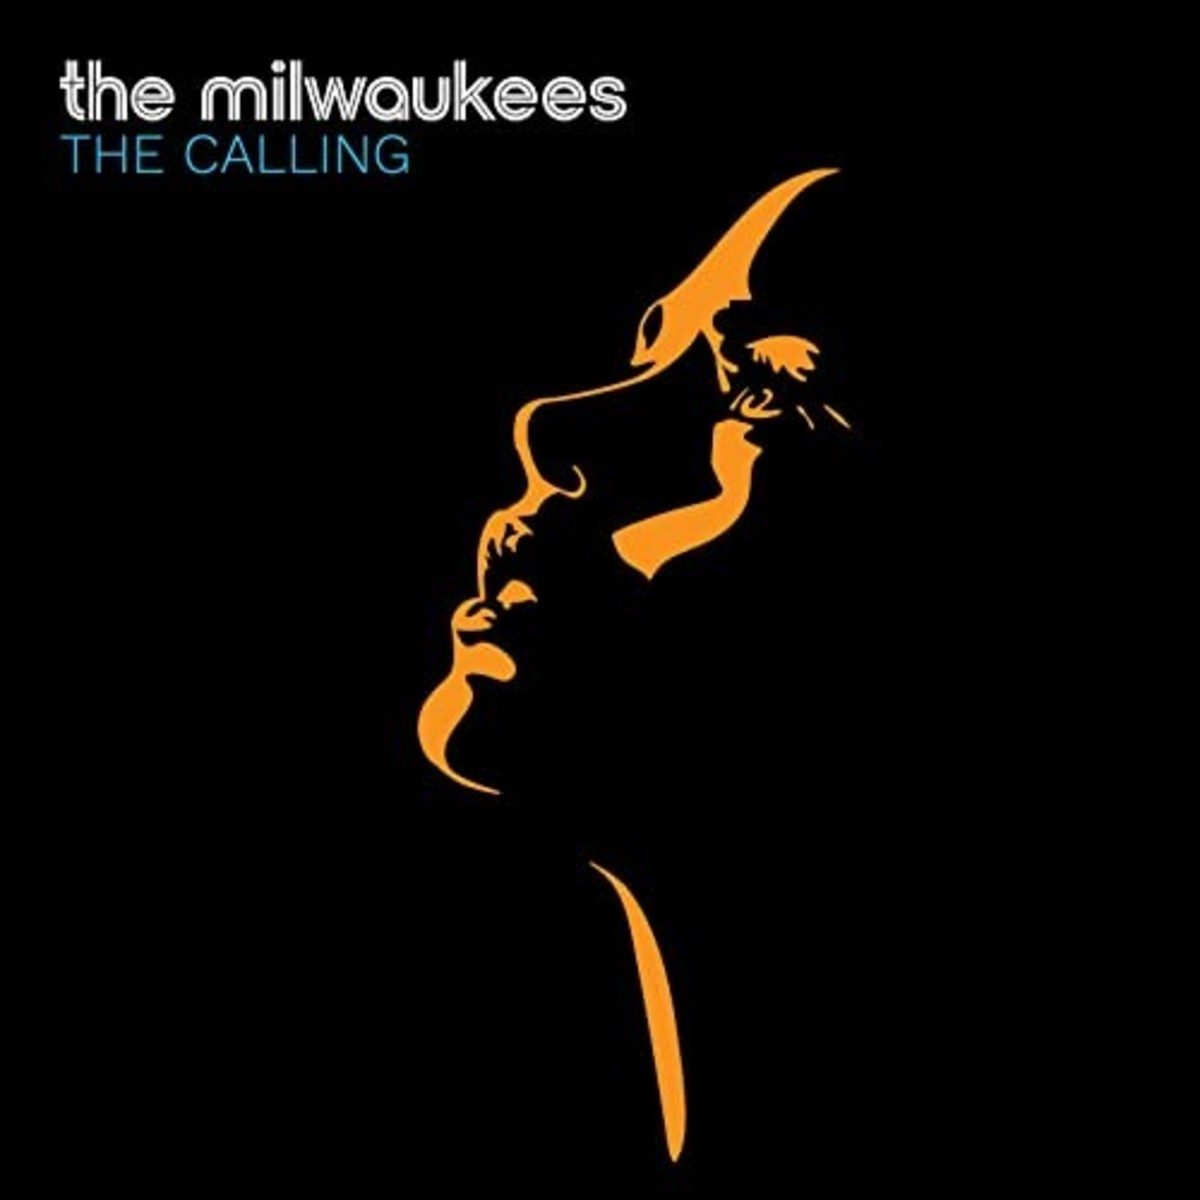 Milwaukees CD cover